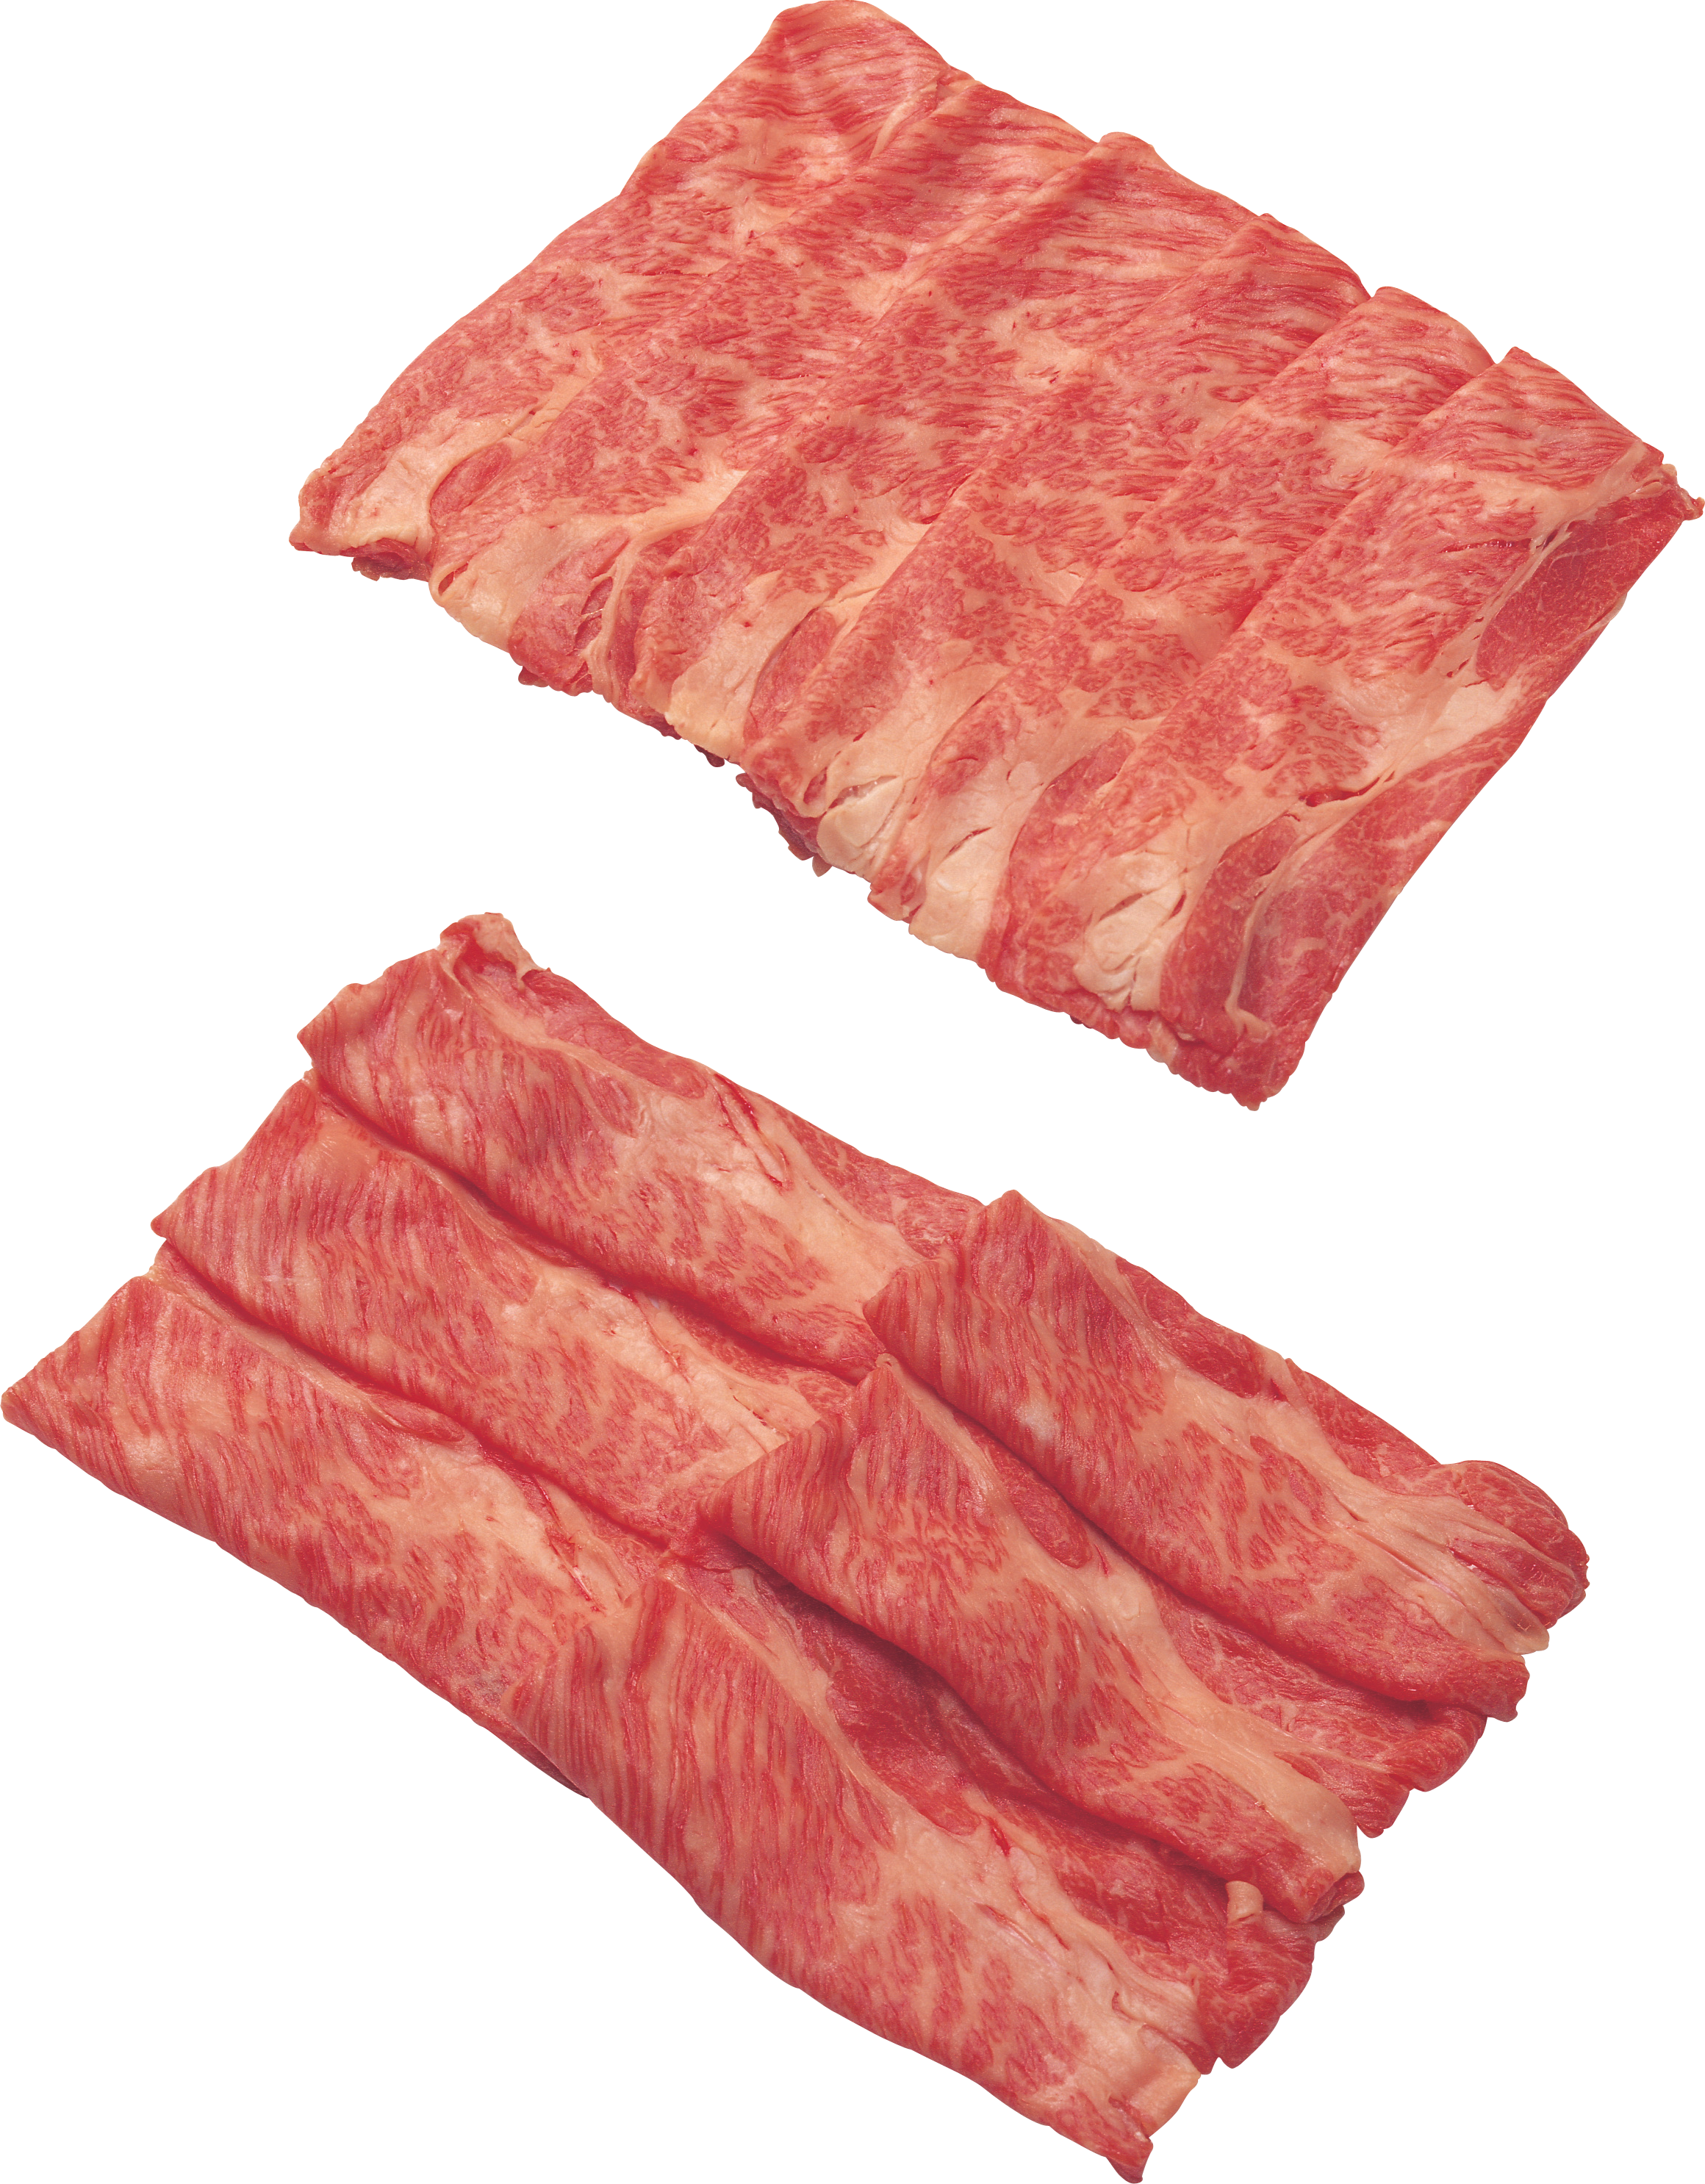 Meat Png image #36757